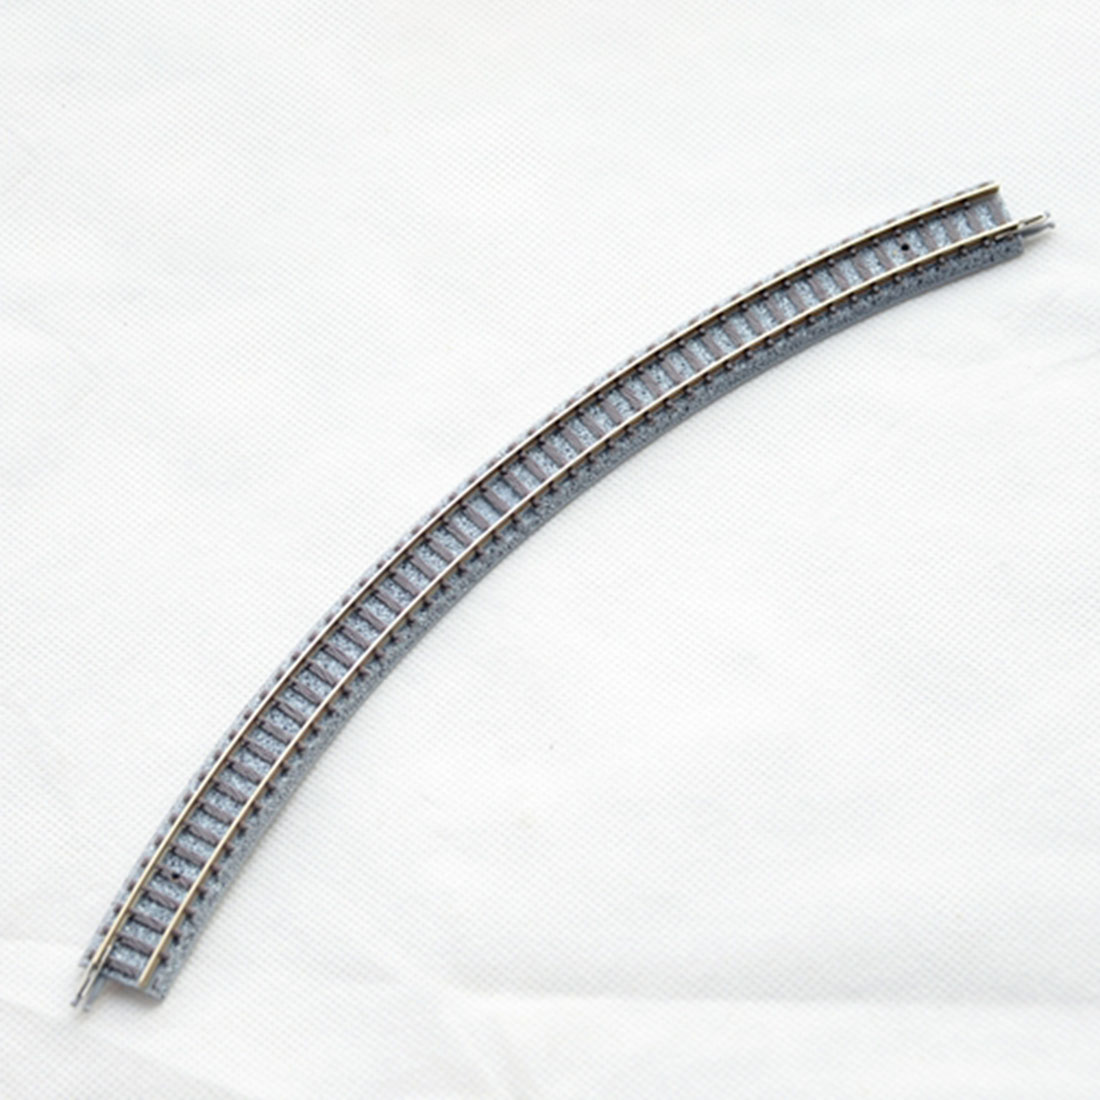 1:160 Train Track Model 1122 C317-45 Curved Track Of 9mm Track Gauge For N-scale